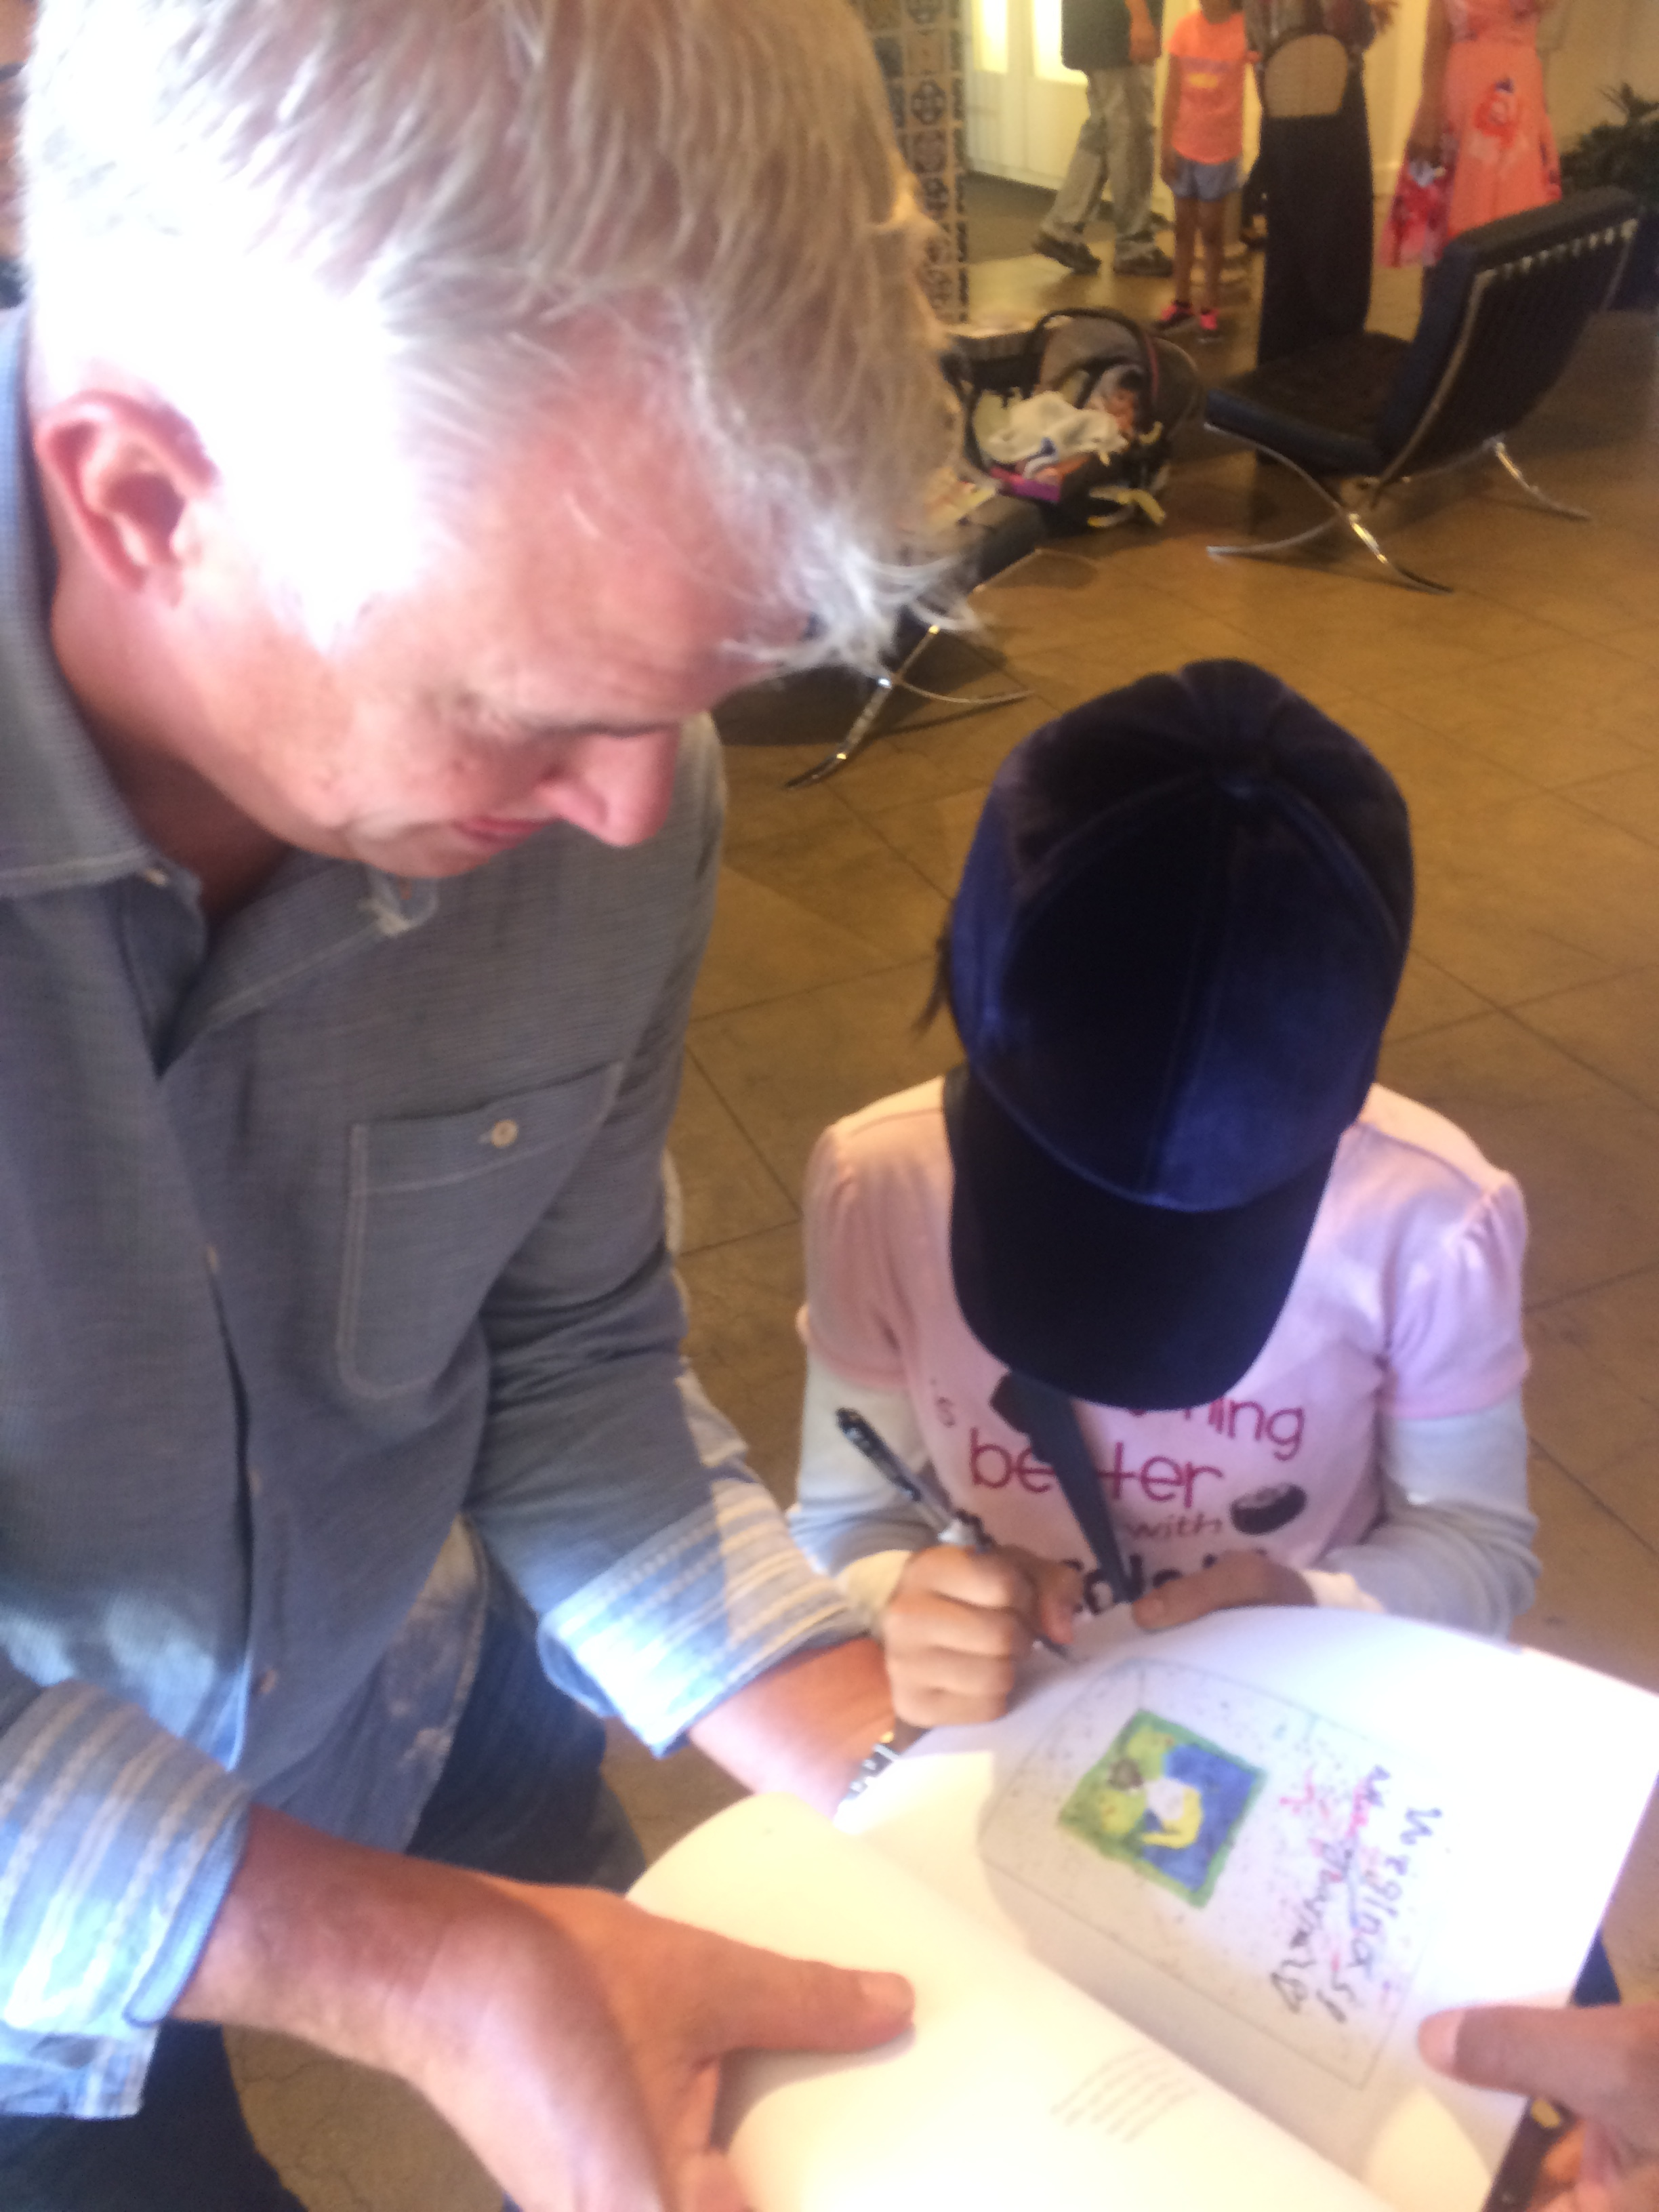 Poet signing a book